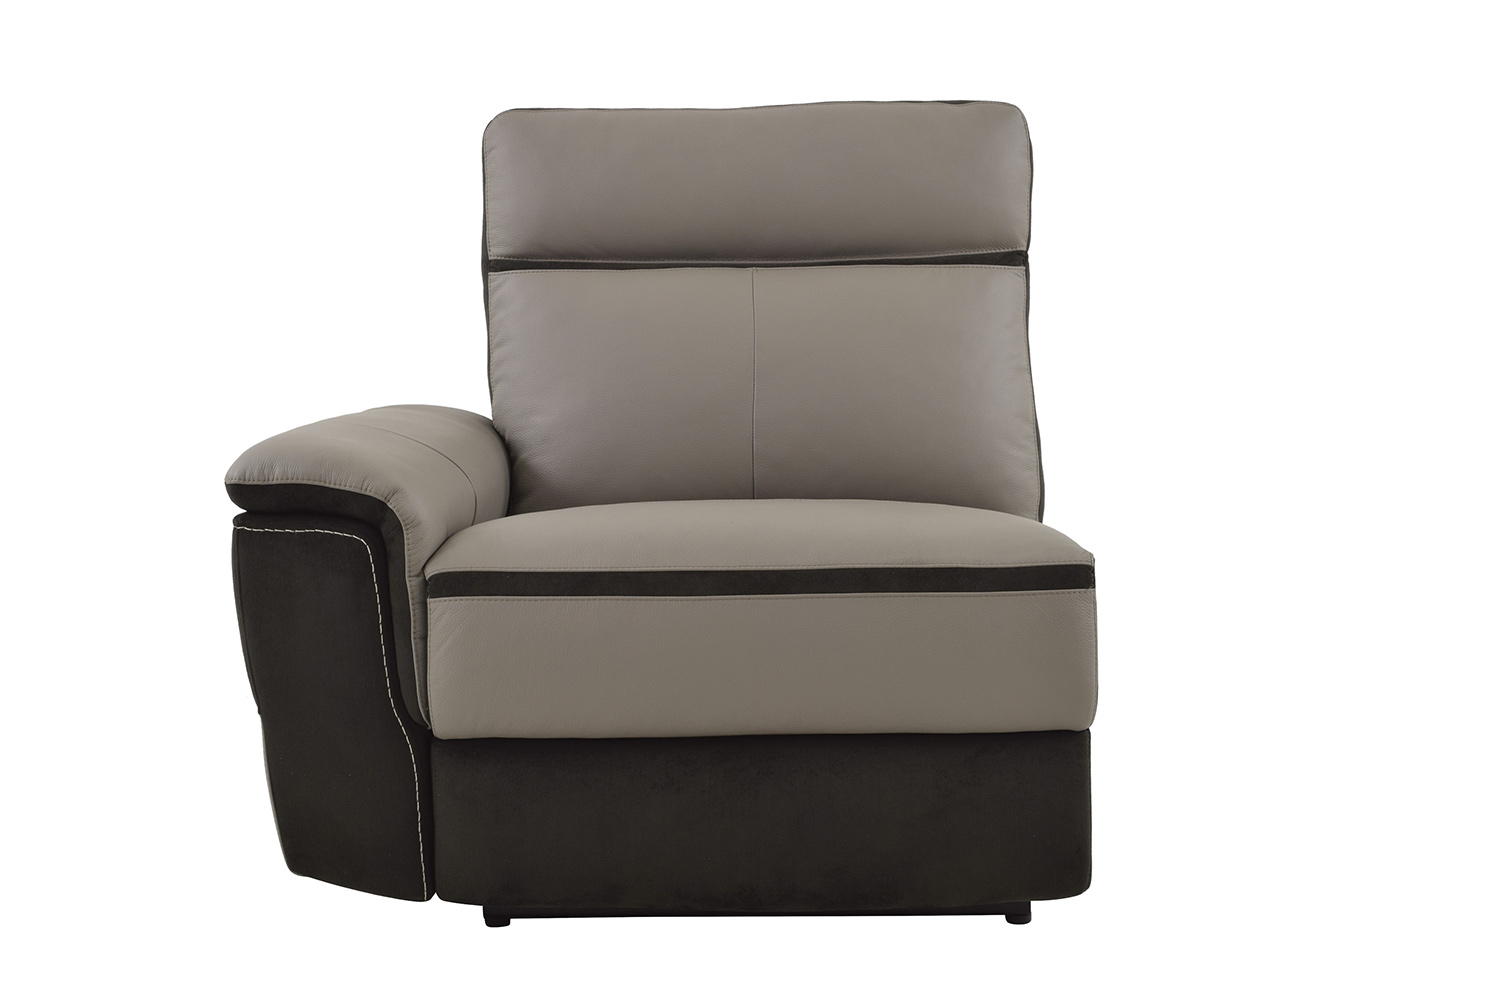 Homelegance Laertes Power Left Side Reclining Chair - Top Grain Leather/Fabric - Taupe Grey